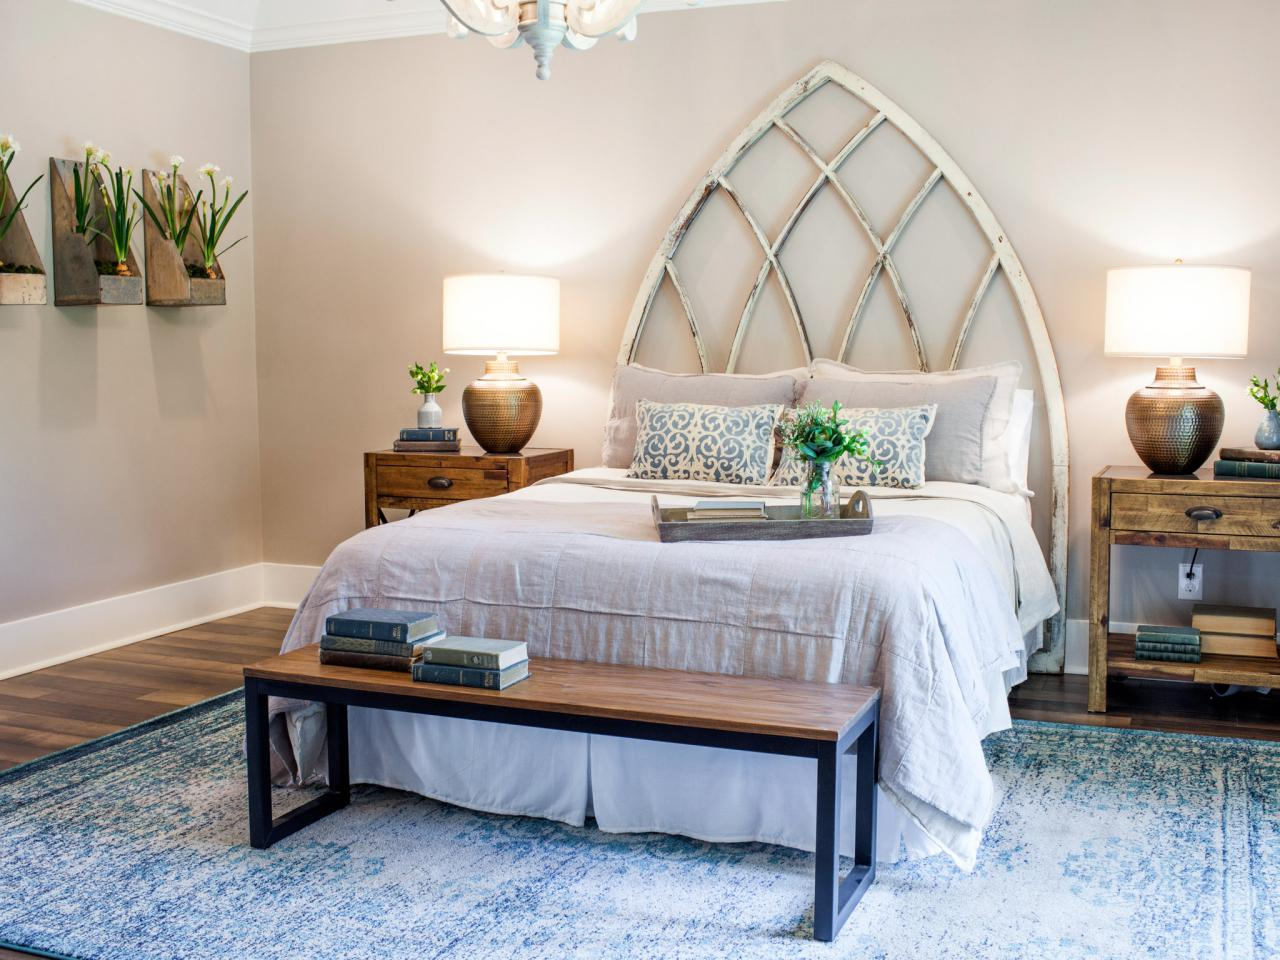 Photos hgtv 39 s fixer upper with chip and joanna gaines hgtv for Joanna gaines bedroom ideas